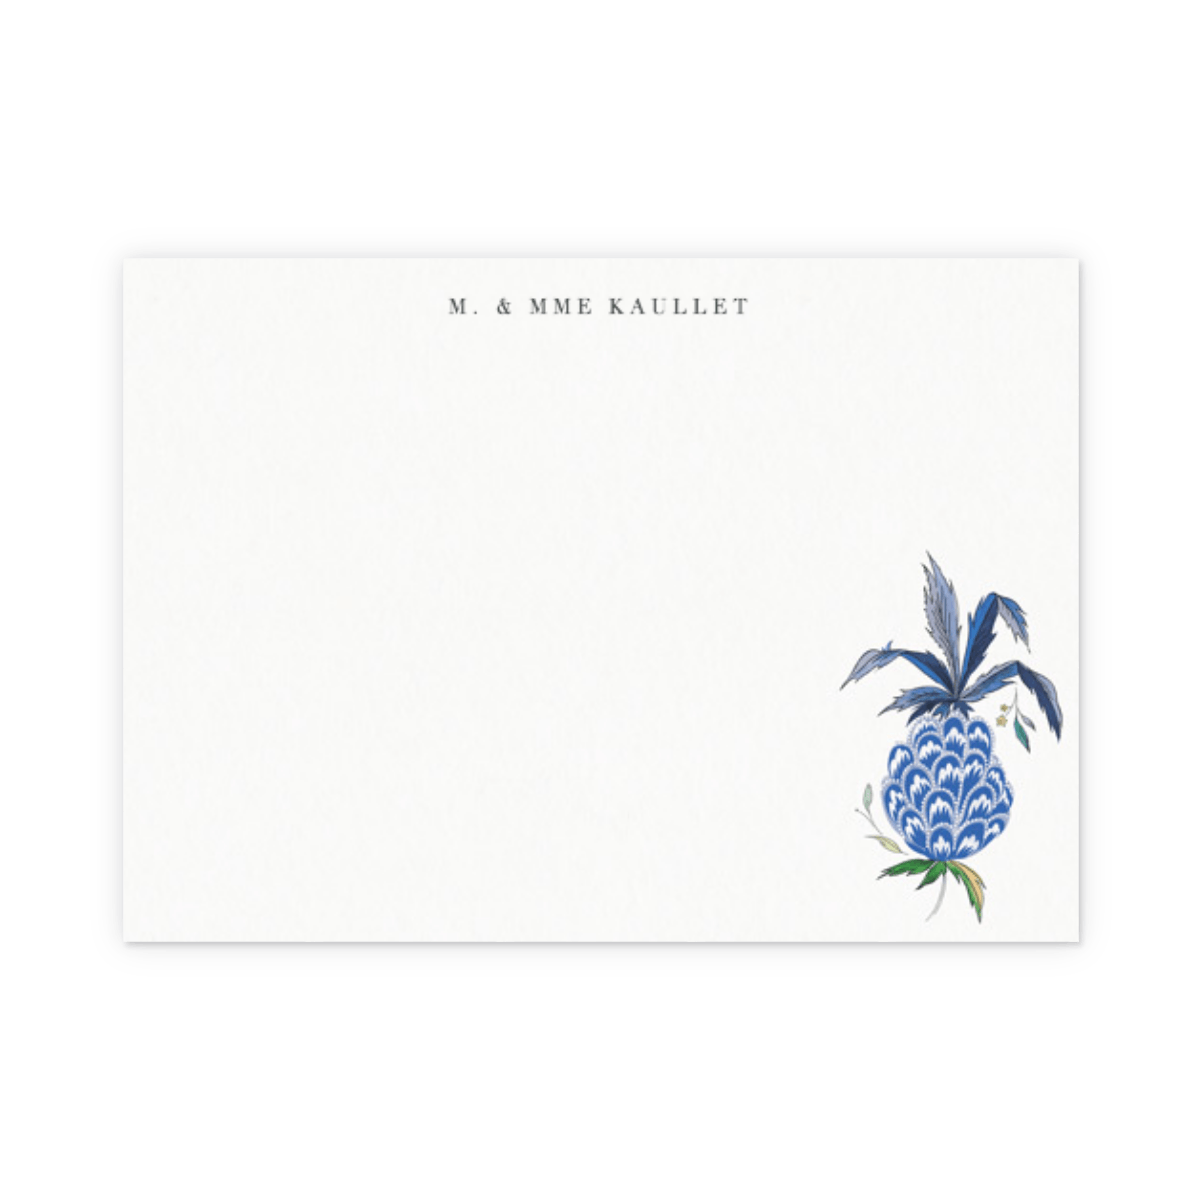 Https%3a%2f%2fwww.papier.com%2fproduct image%2f44953%2f10%2fpineapple paisley 2437 avant 1534867867.png?ixlib=rb 1.1